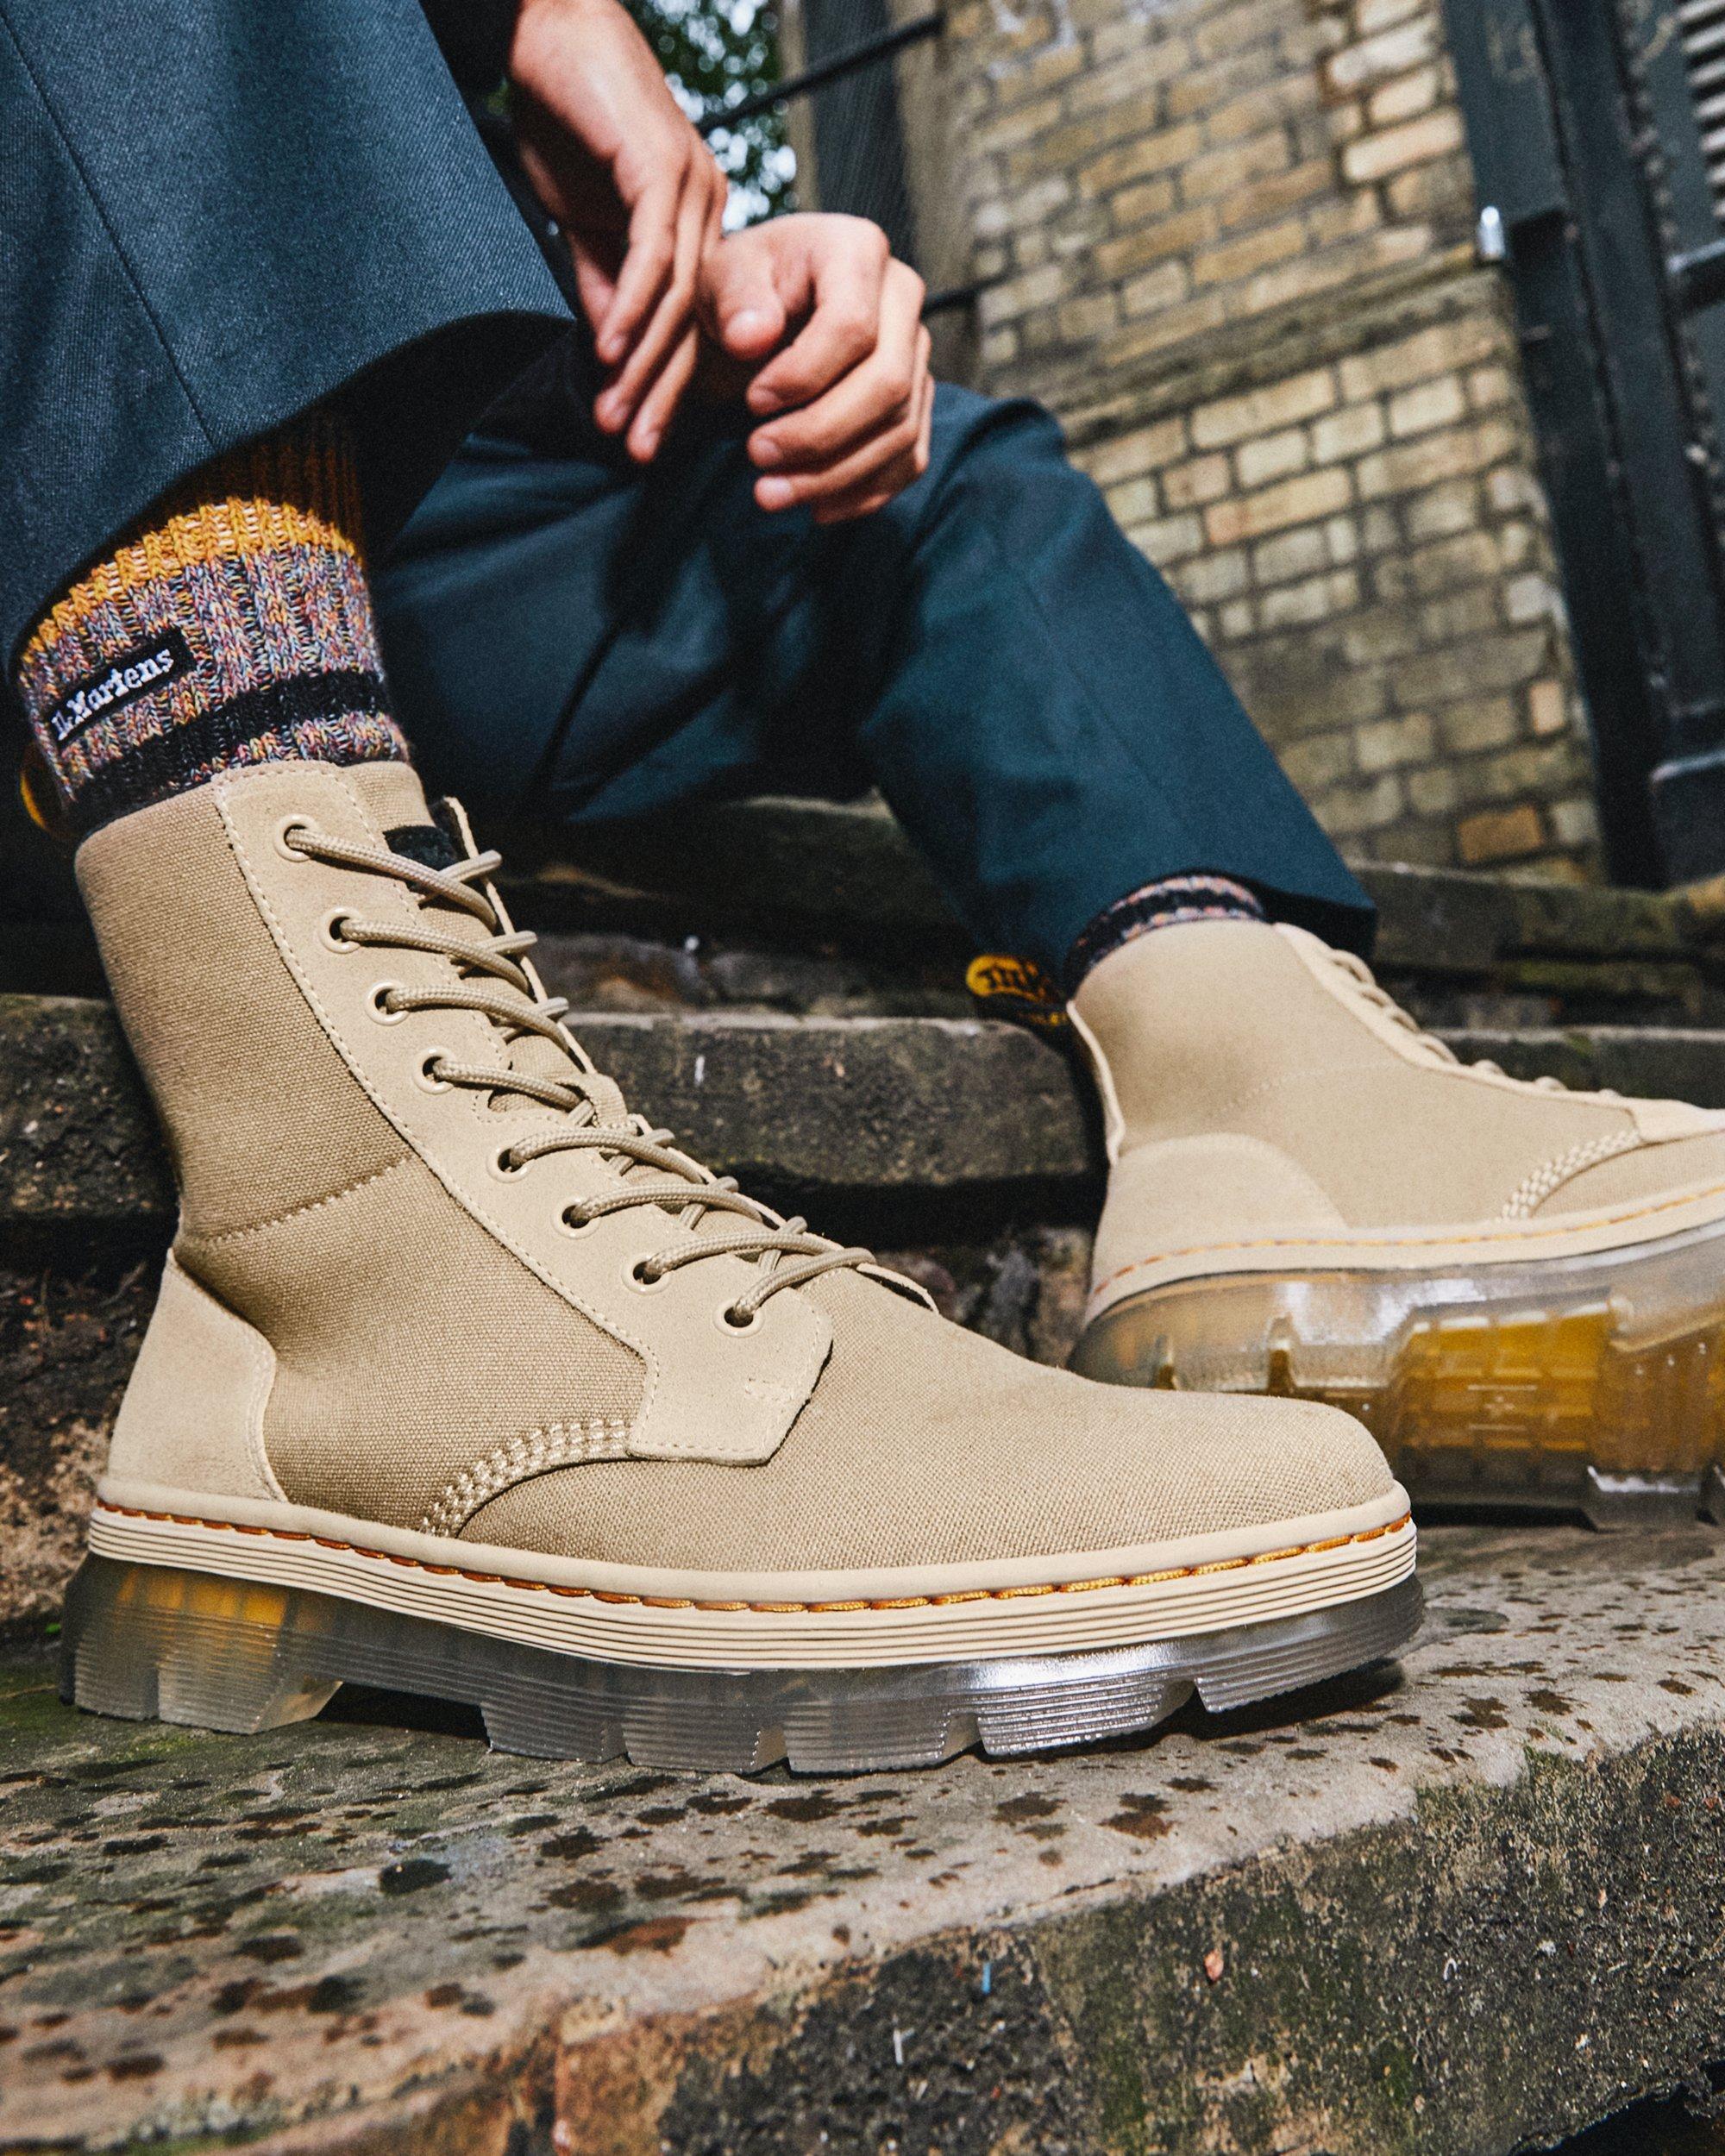 Homme Dr. Martens Boots Utilitaires Combs Ii Iced En Daim  Le Sable | Boots Casual